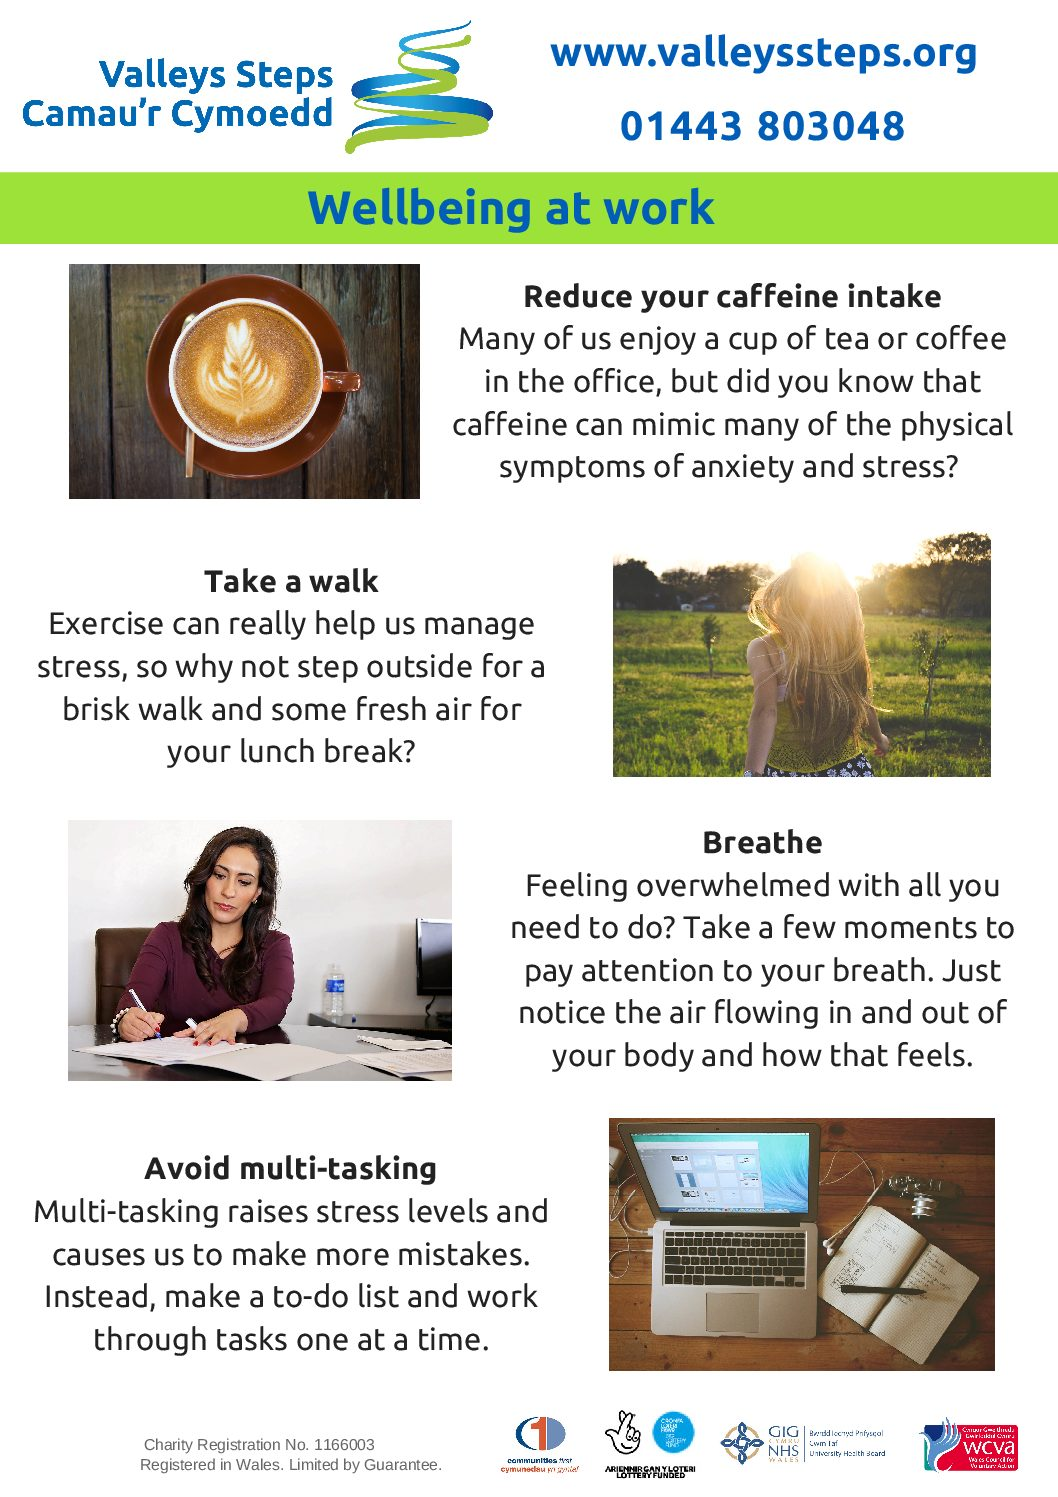 4 easy tips to manage your stress and wellbeing at work.